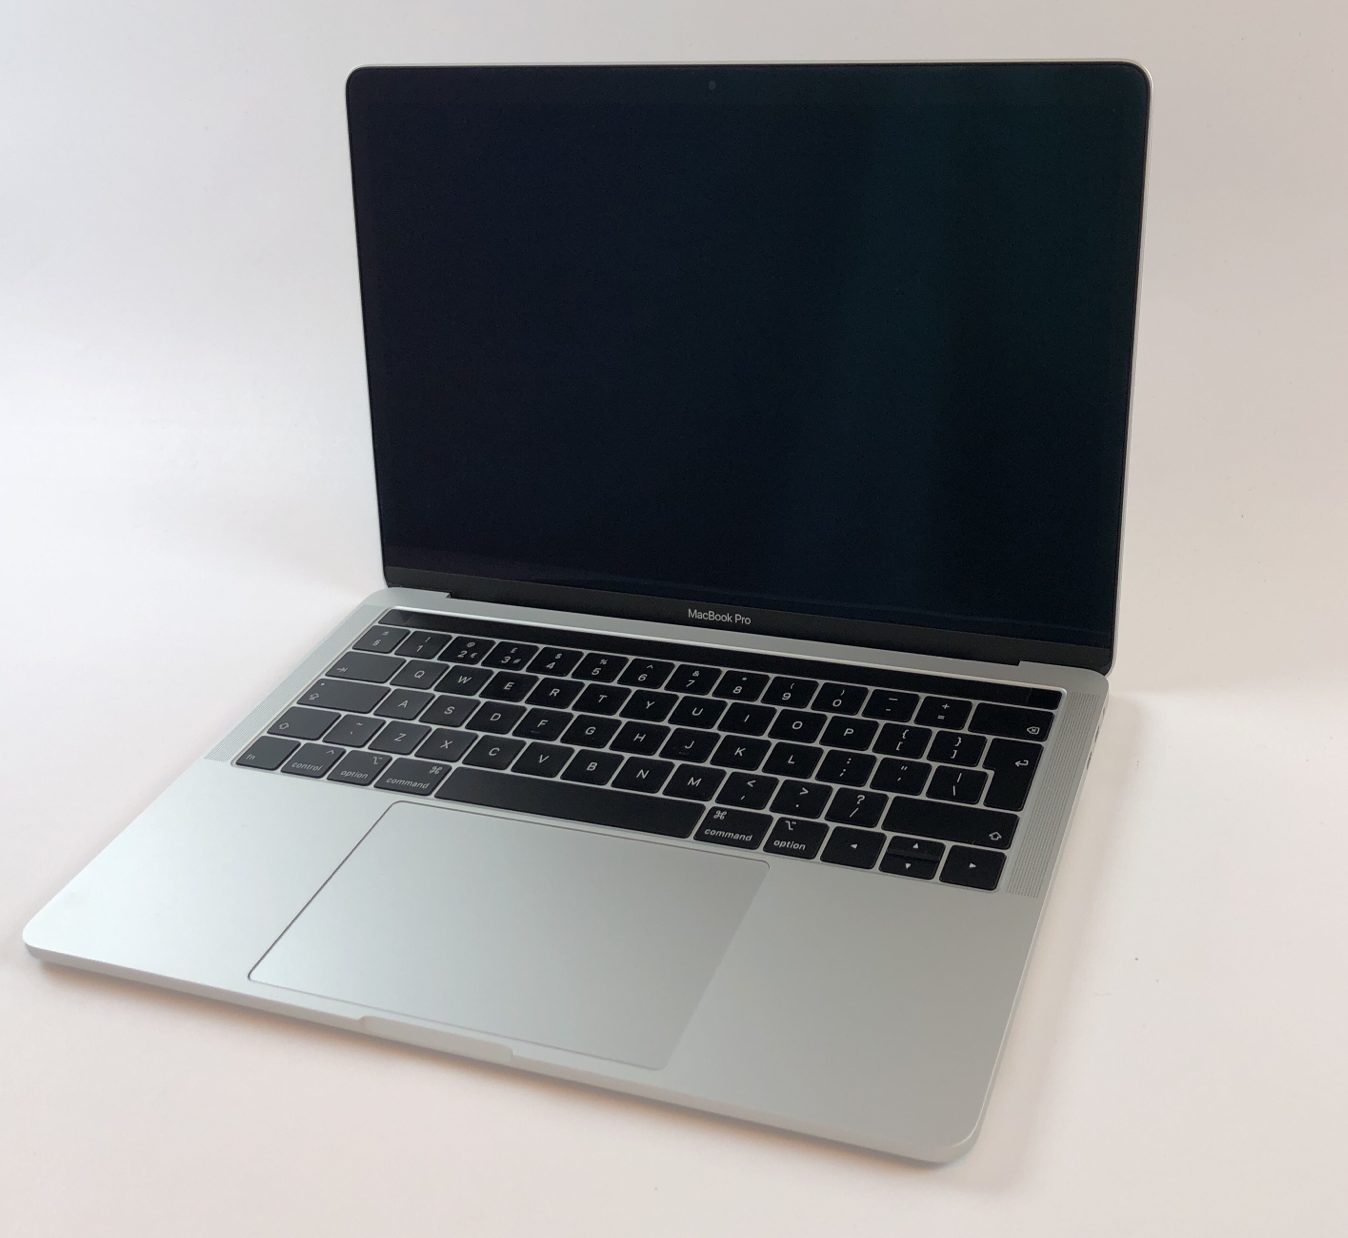 "MacBook Pro 13"" 4TBT Mid 2018 (Intel Quad-Core i5 2.3 GHz 8 GB RAM 256 GB SSD), Silver, Intel Quad-Core i5 2.3 GHz, 8 GB RAM, 256 GB SSD, image 1"